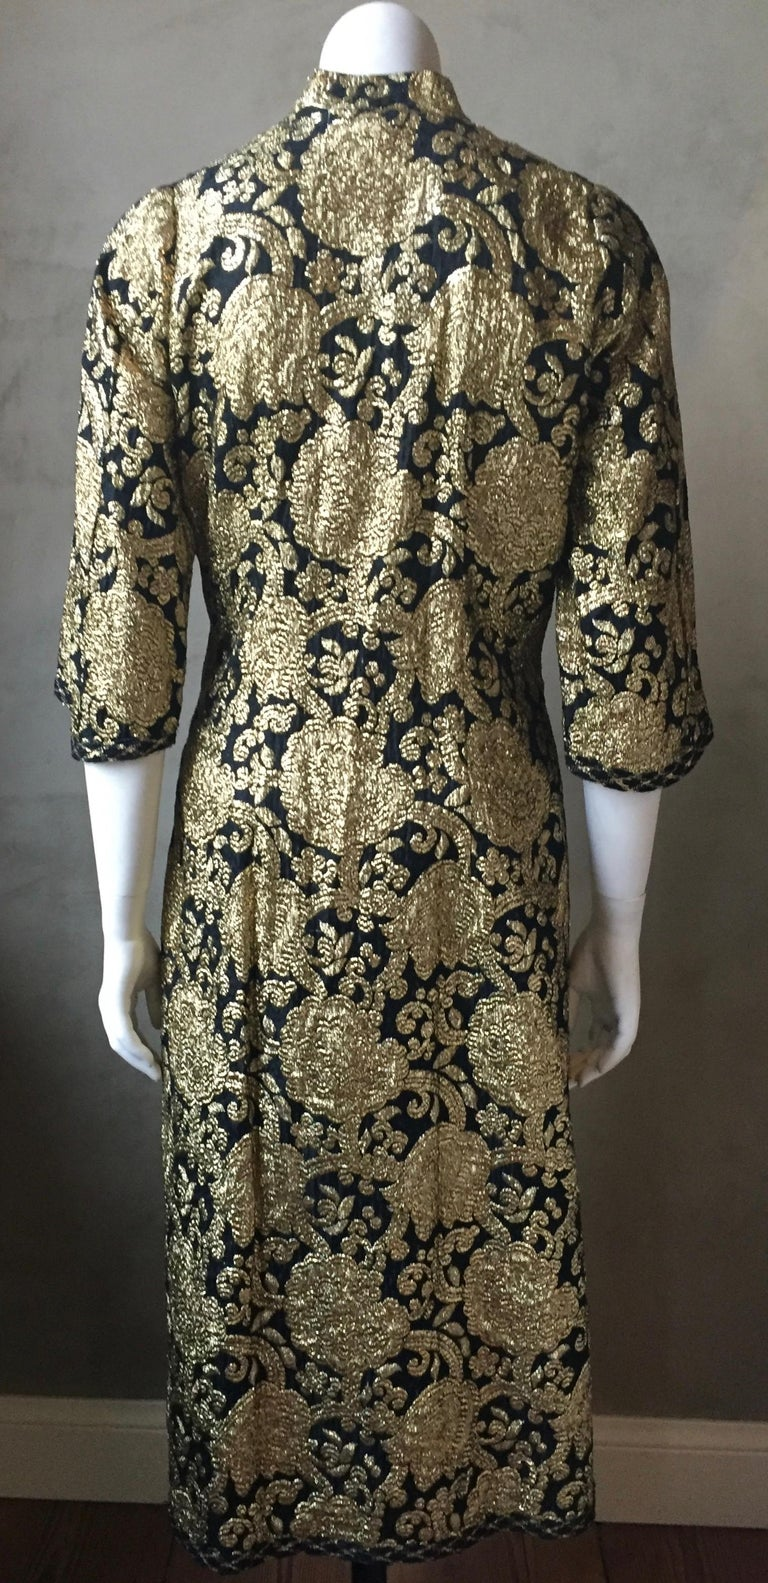 Vintage Gold and Black Brocade Dress/Jacket with Knot Buttons In Good Condition For Sale In Antwerp, BE